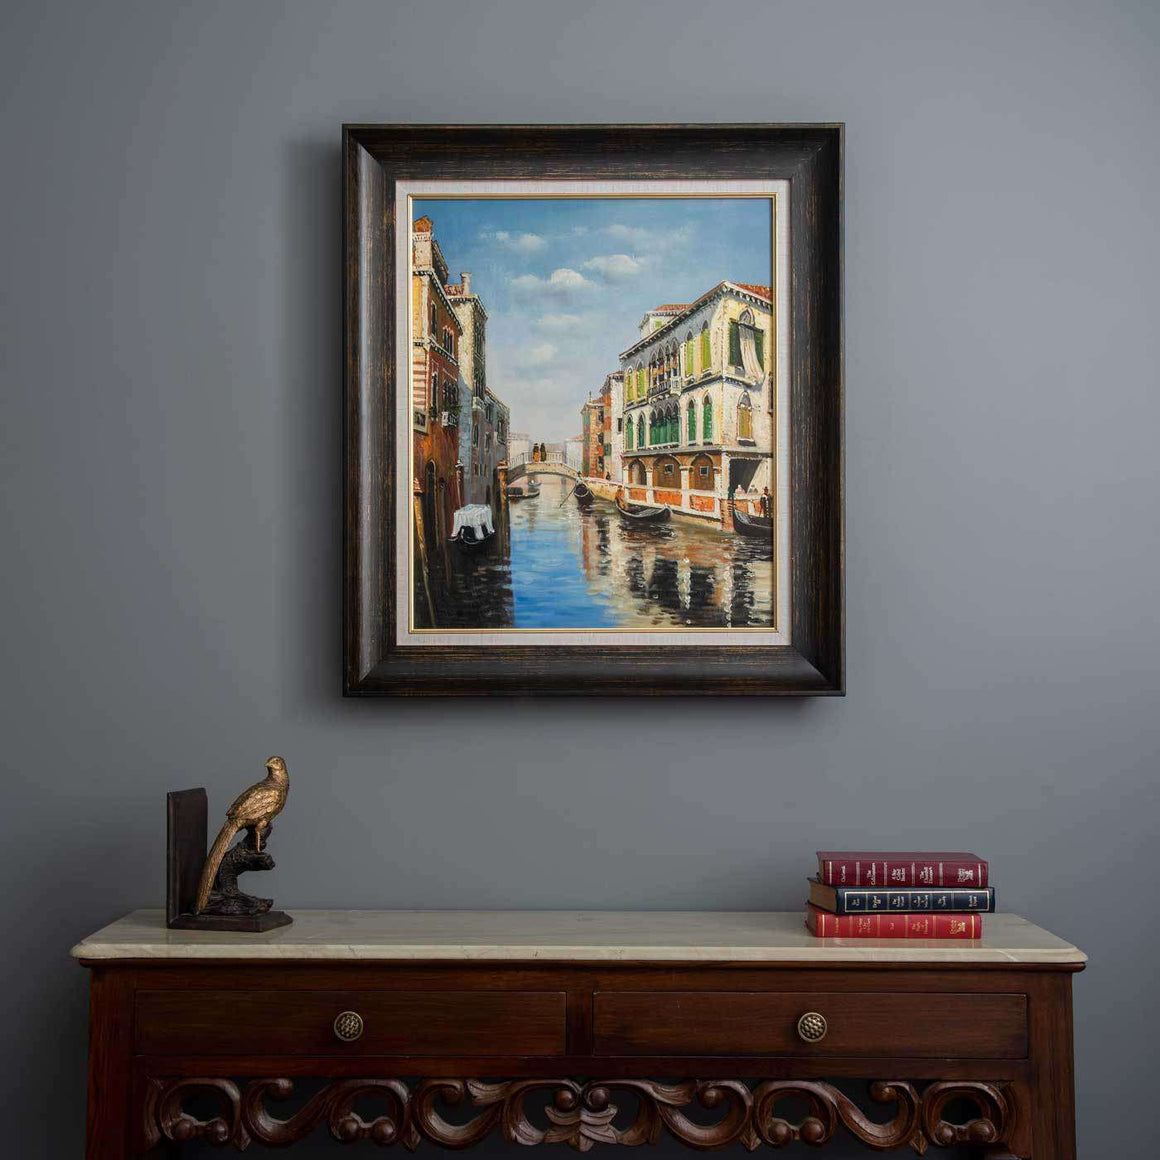 "'The Canal ....Venice' Handmade Oil Painting 26"" * 30"""